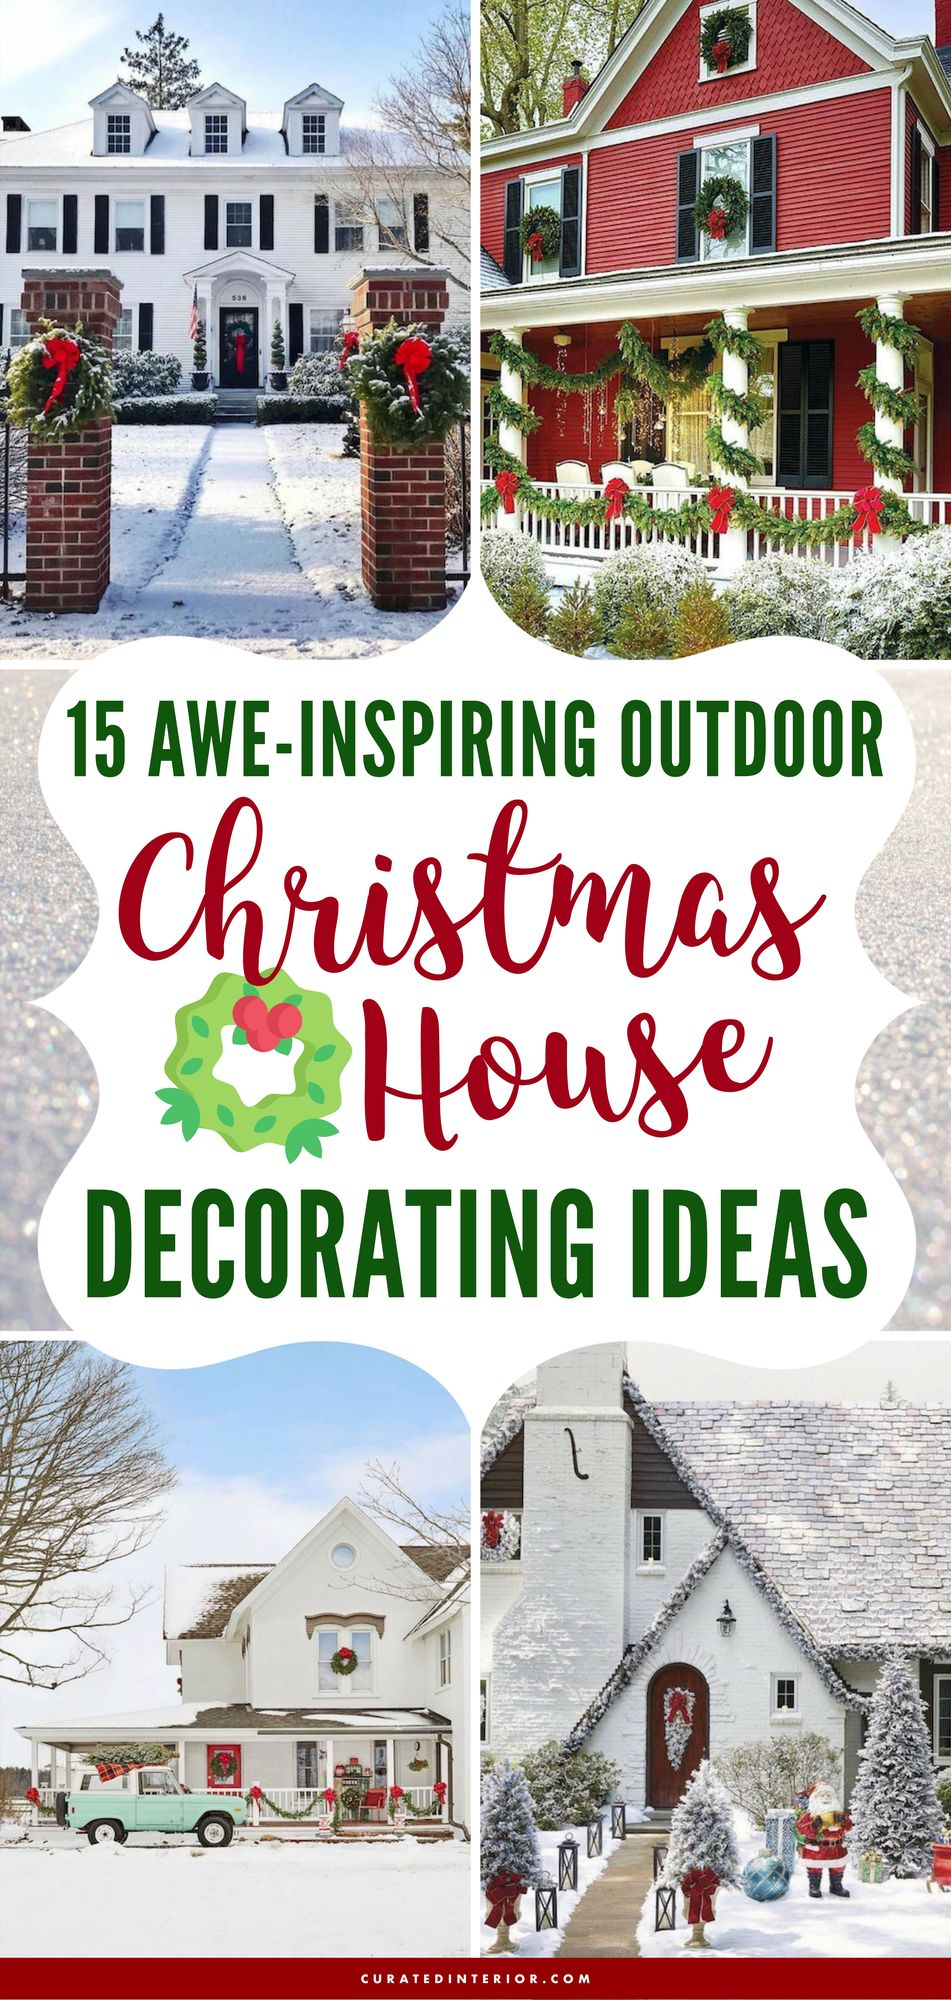 15 Awe-Inspiring Outdoor Christmas House Decorating Ideas!! #ChristmasDecor